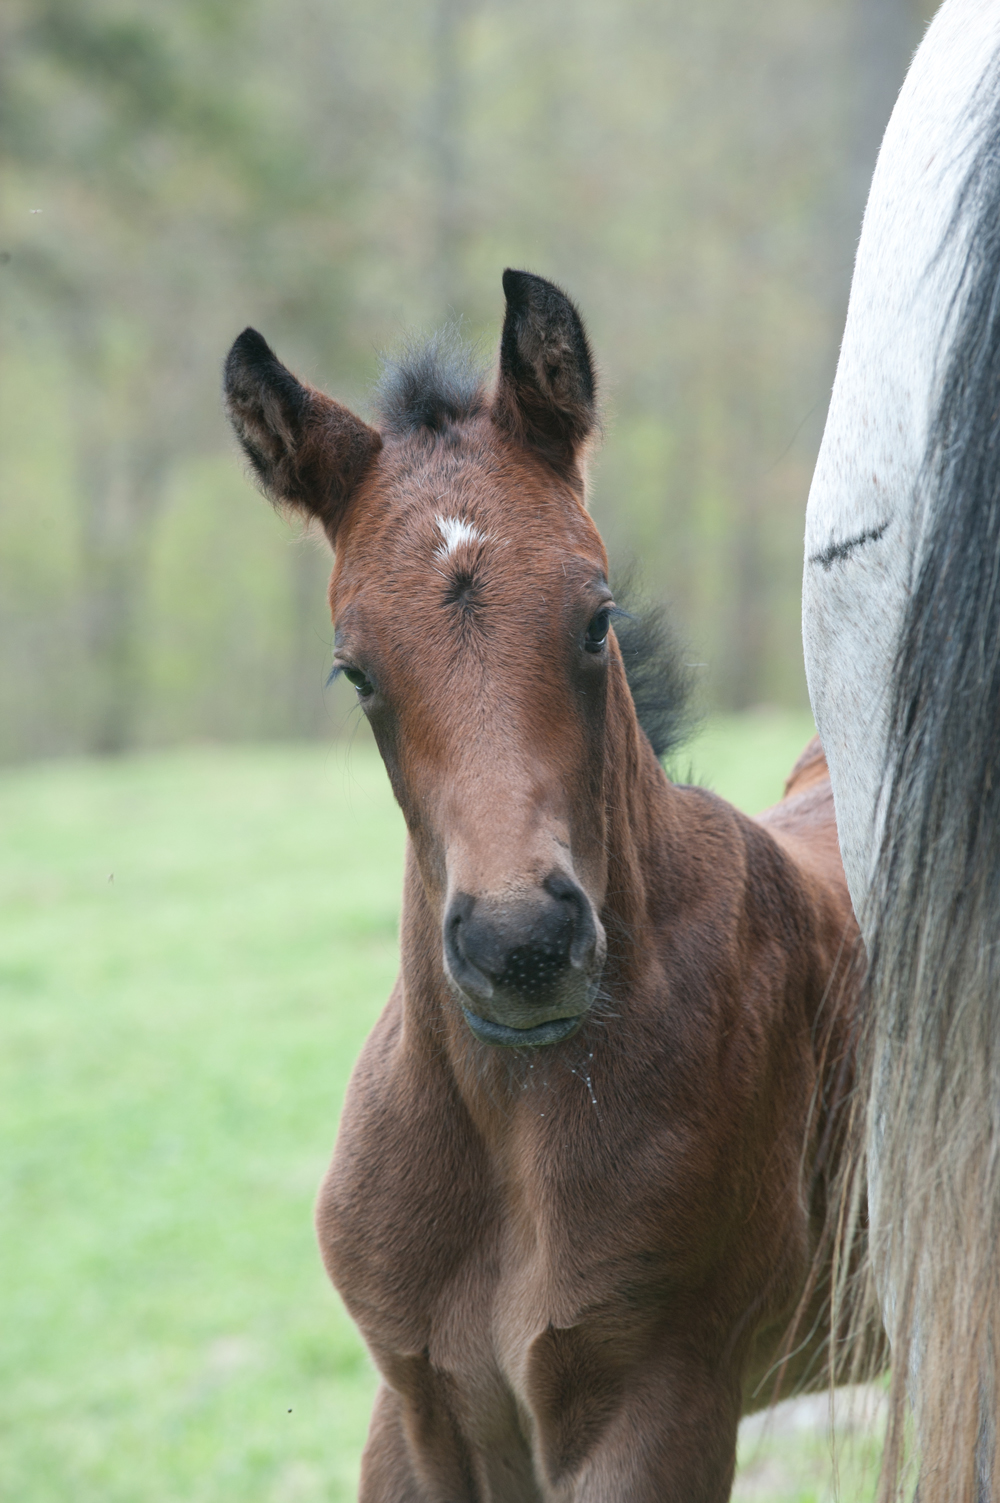 New foal at Rimrock Cove Ranch